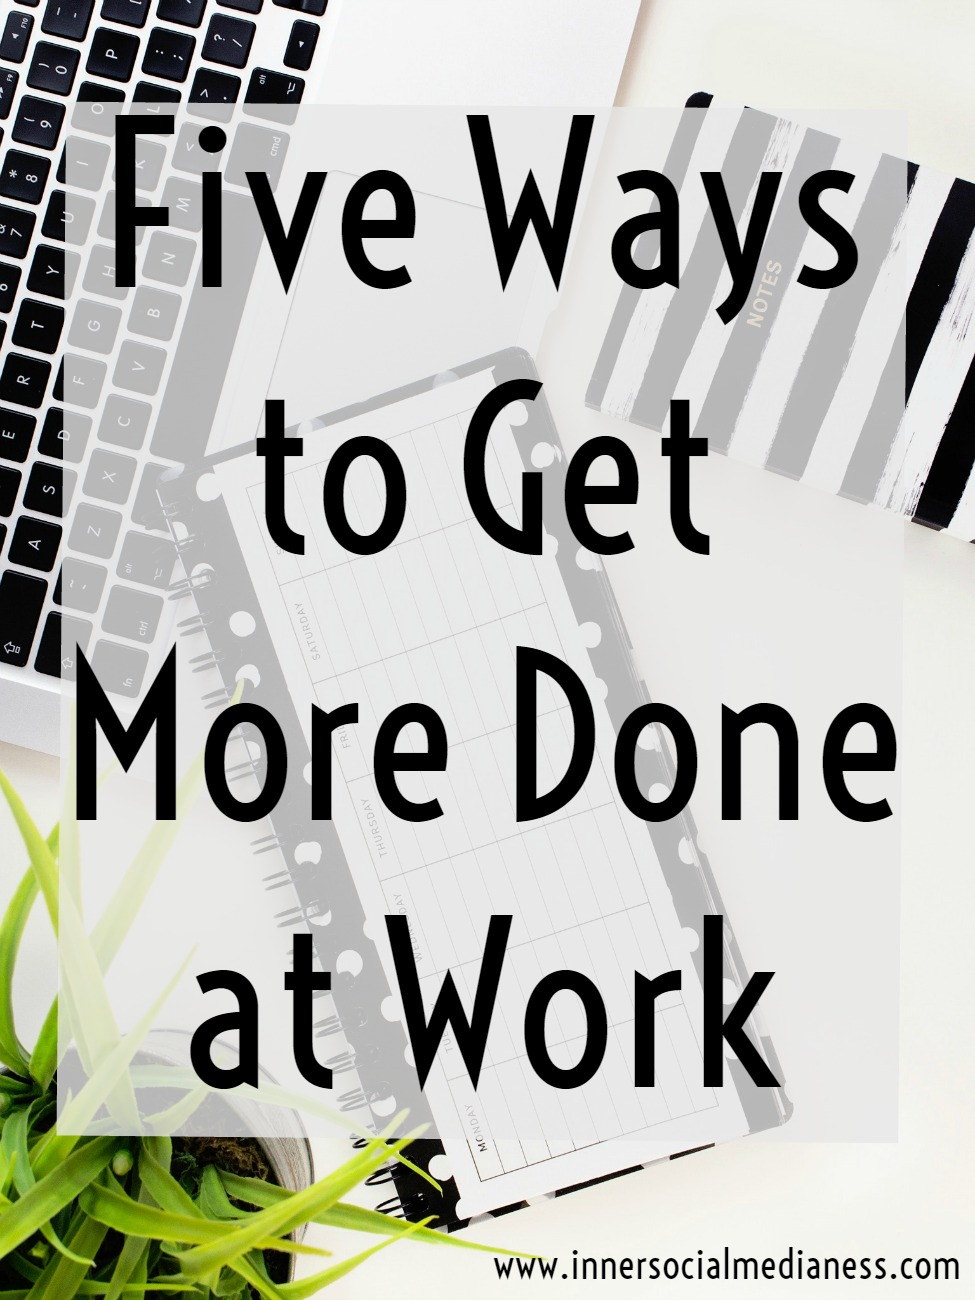 Five ways to get more done at work - when life throws you off track, what can you do to stop reacting to just getting stuff done your to-do list rather than working on the action items that will grow your business? It's not as hard as you think. Try out these five steps to learn how to get back control over your schedule.